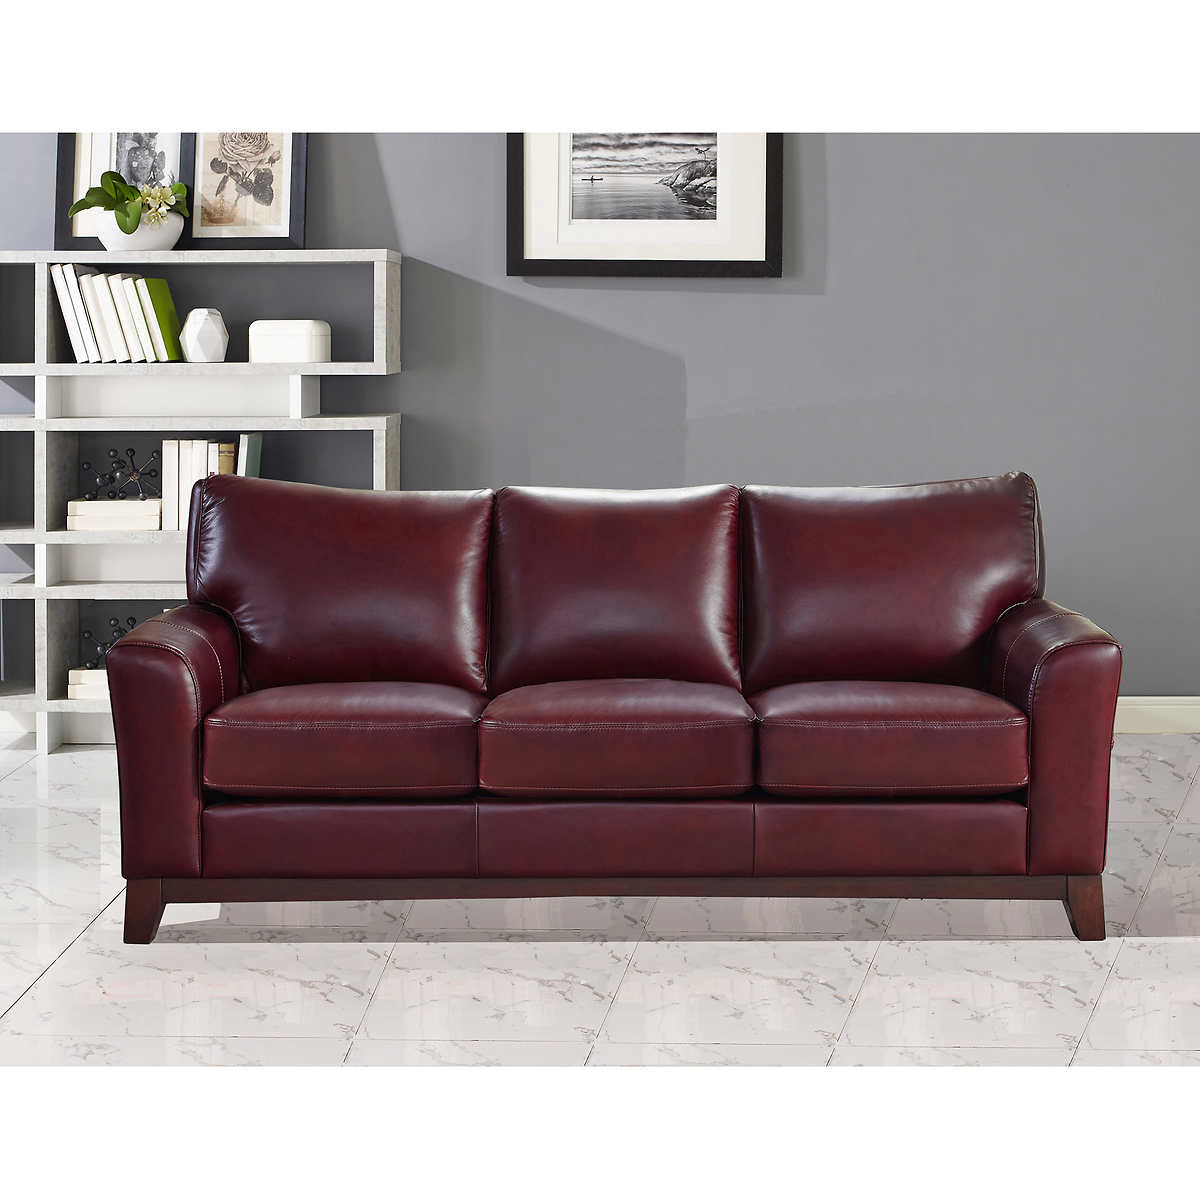 Leather Sofa Furniture leather sofas & sectionals | costco